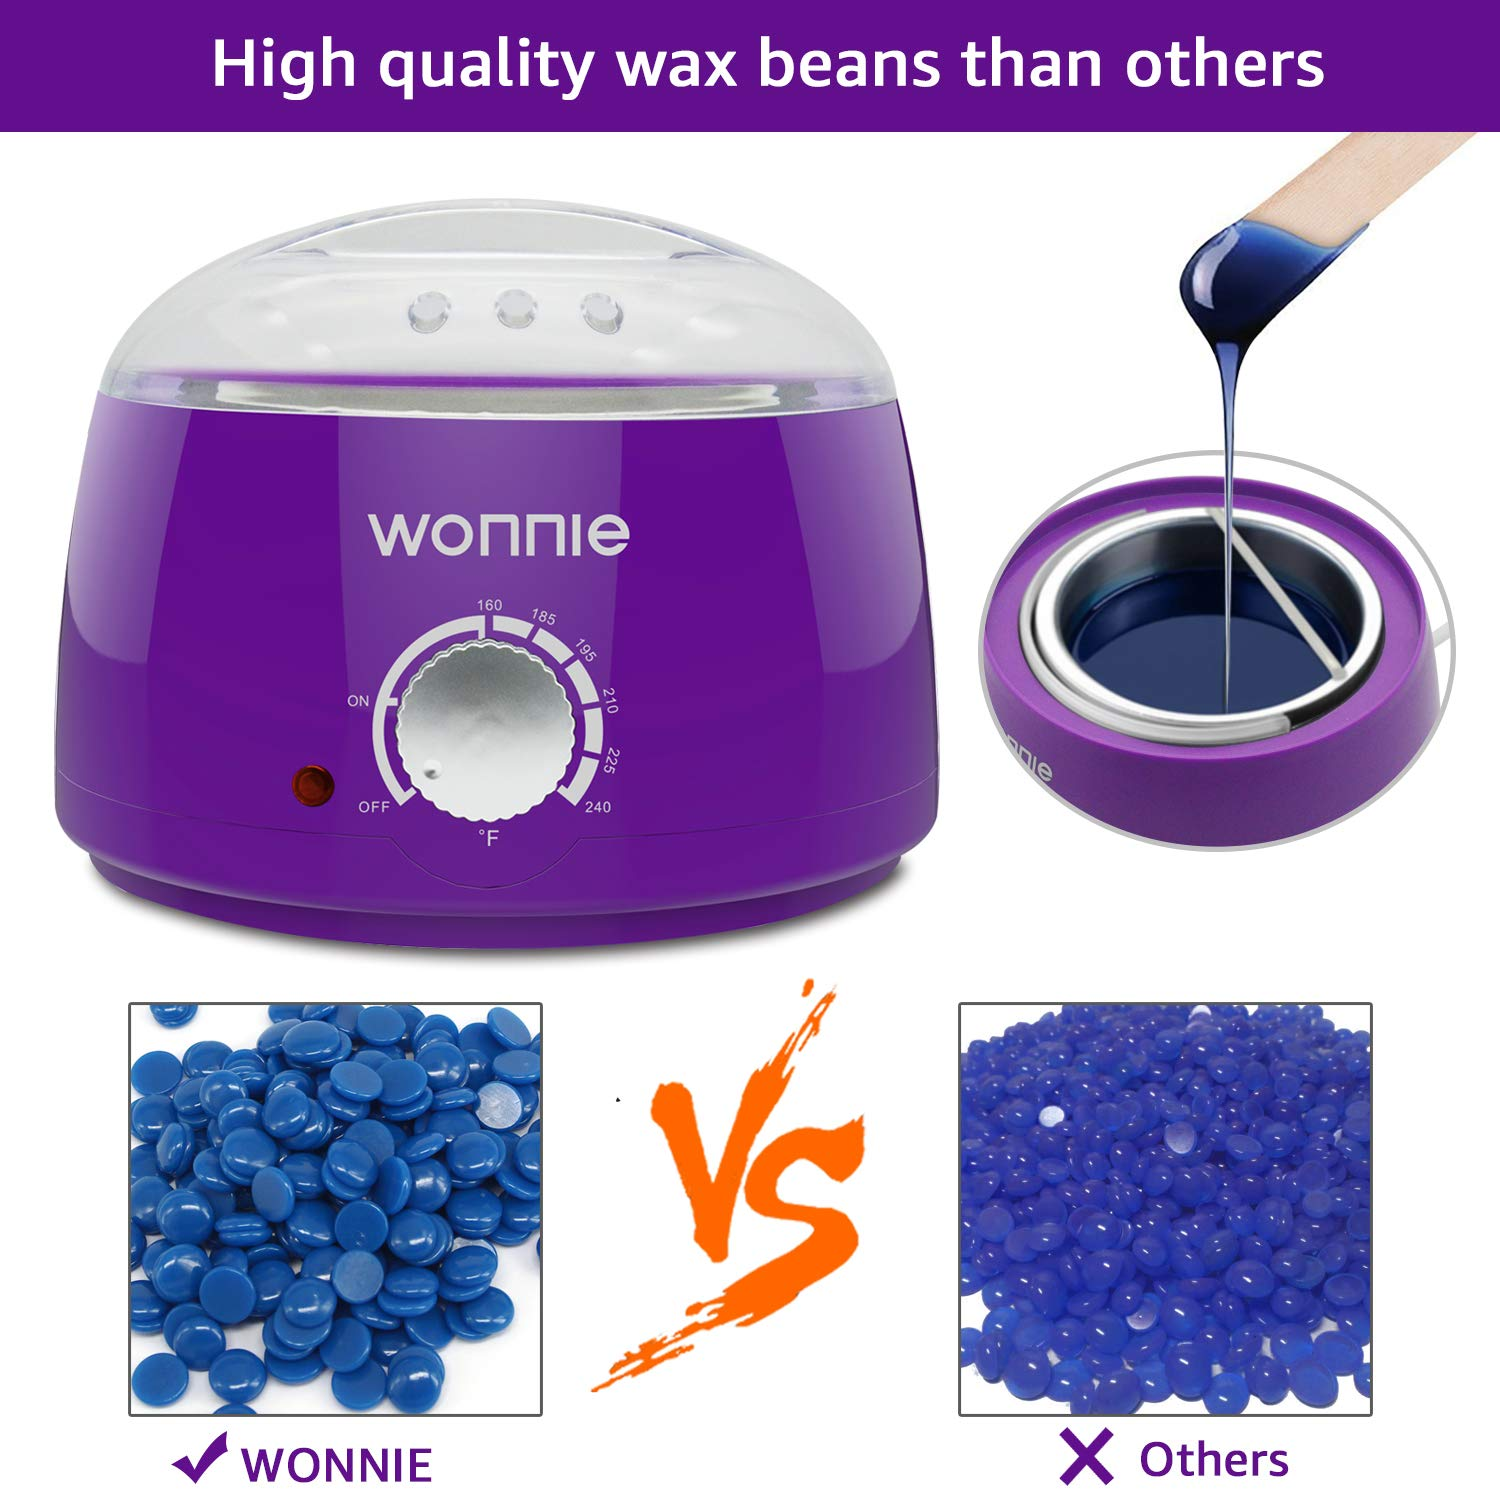 WONNIE Wax Heater Pot Waxing Kits Professional Full Kit with 3 Packs of Hard Wax Beads Electric Wax Warmer Hair Removal with 20 Wooden Sticks for Body Legs Bikini Limber